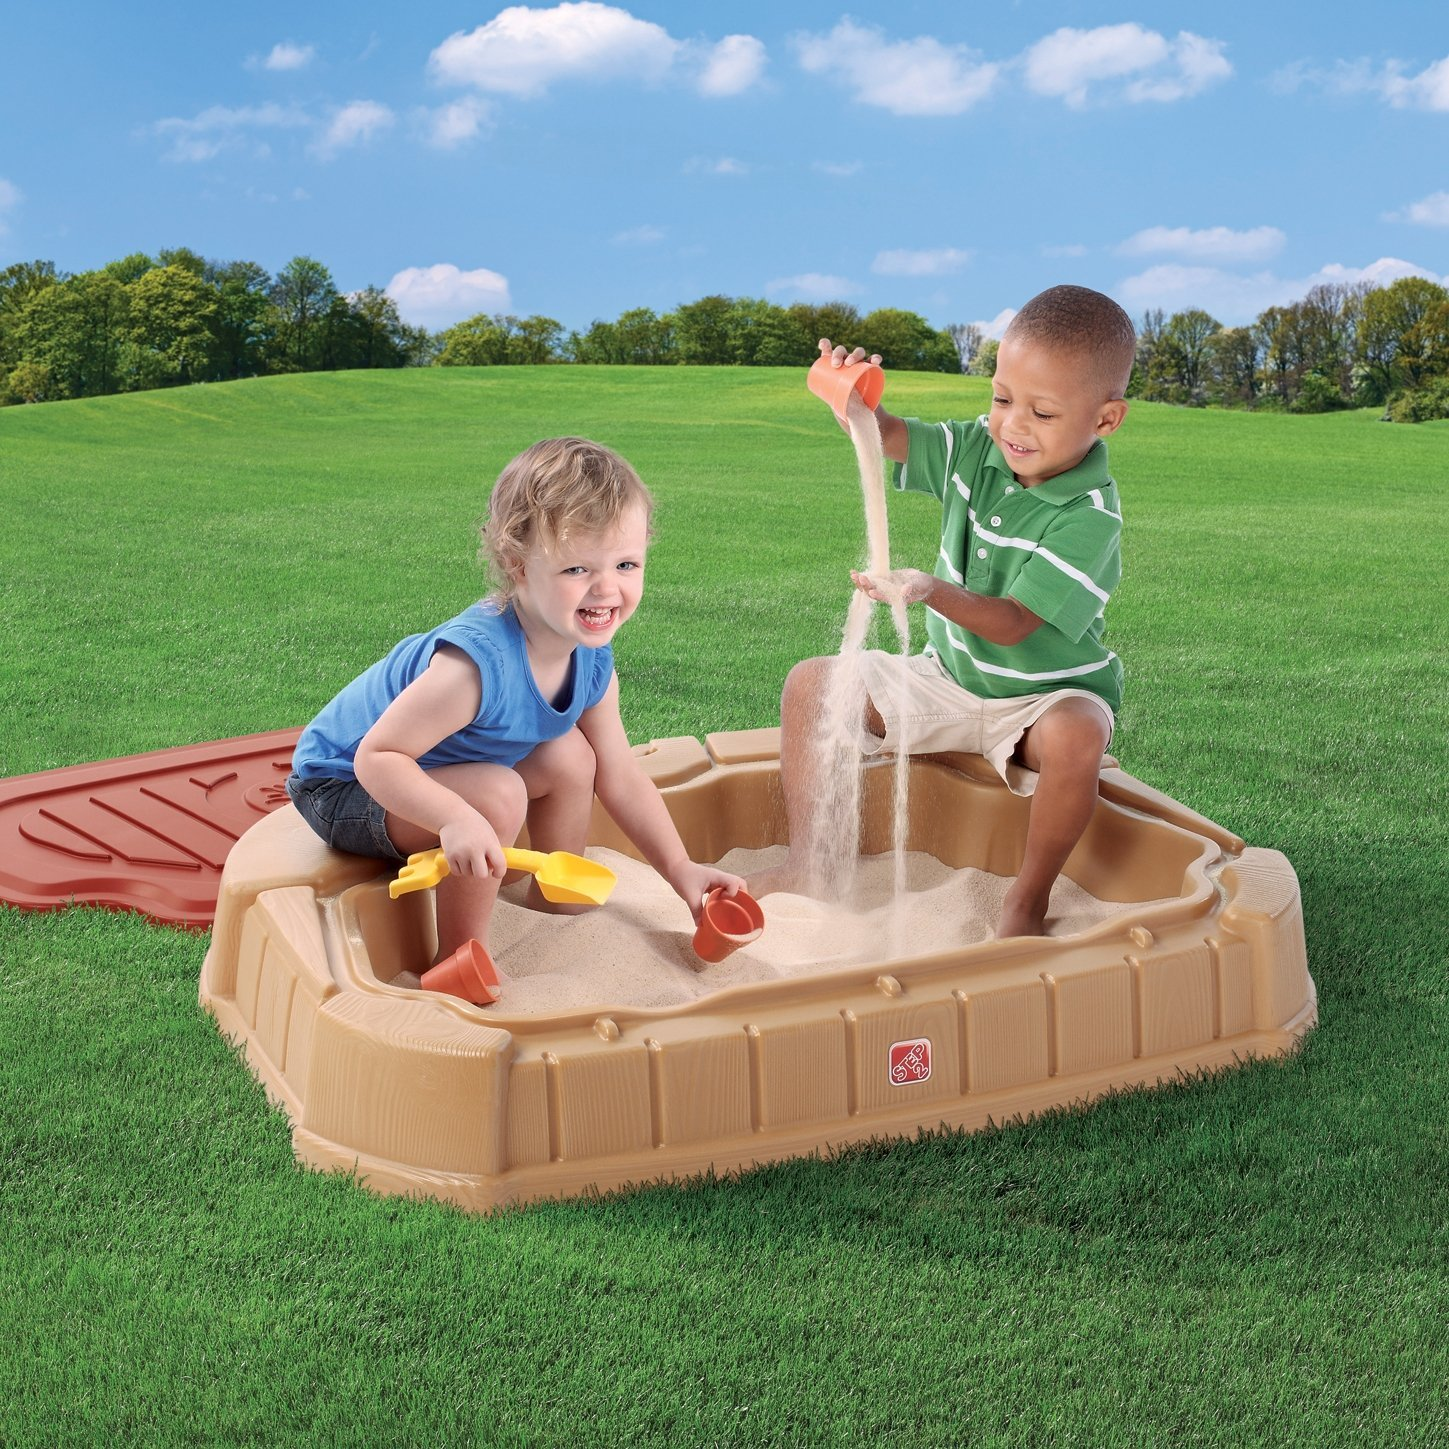 Fullsize Of Two Kids In A Sandbox